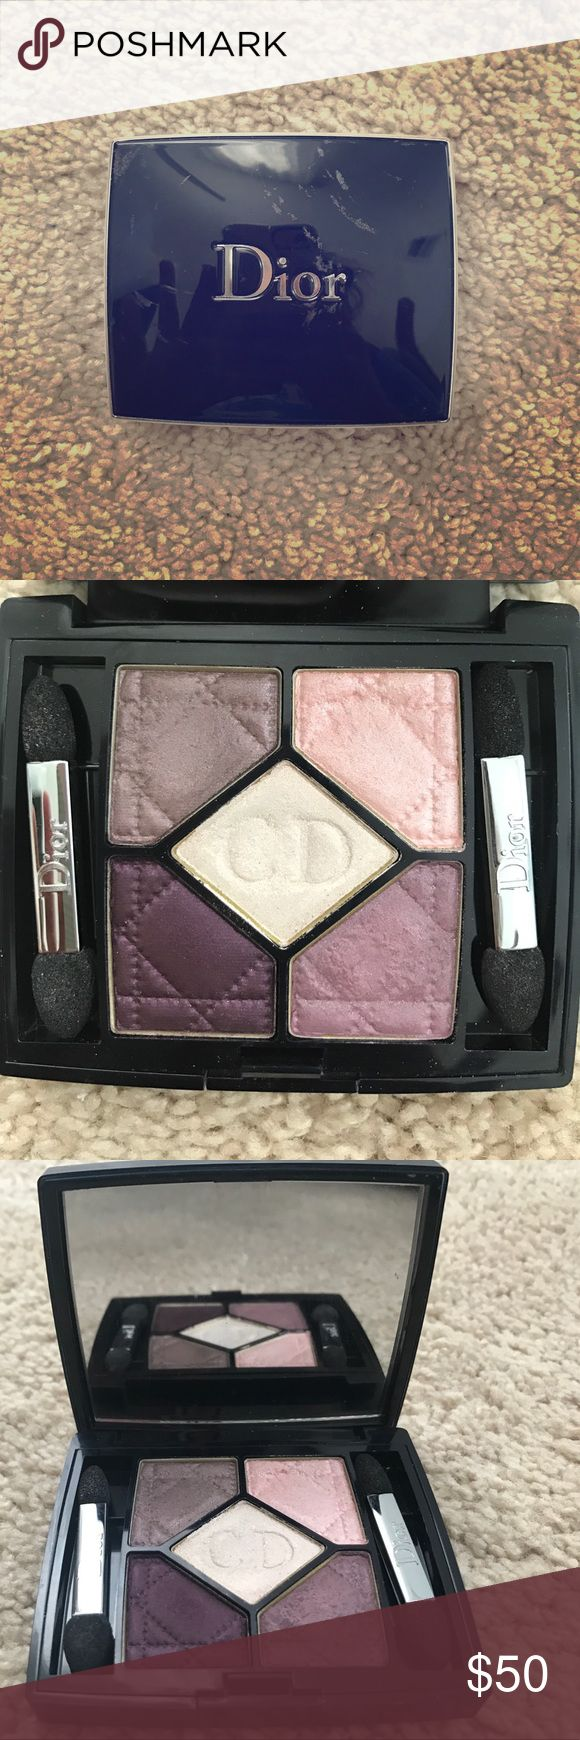 Christian Dior Eye Shadow Palette 970 Stylish Move Beautiful pigmented hues of purple! Perfect for people with any eye or skin colour! While it is authentic I don't have receipts to provide you with authenticity except my word, and since it has been used the price is lower and and probably way underpriced since I have a habit of buying expensive make up. I'm selling it unfortunately to pay for school so my loss is your gain! Still has lots of life in product as you can see! Christian Dior Makeup Eyeshadow